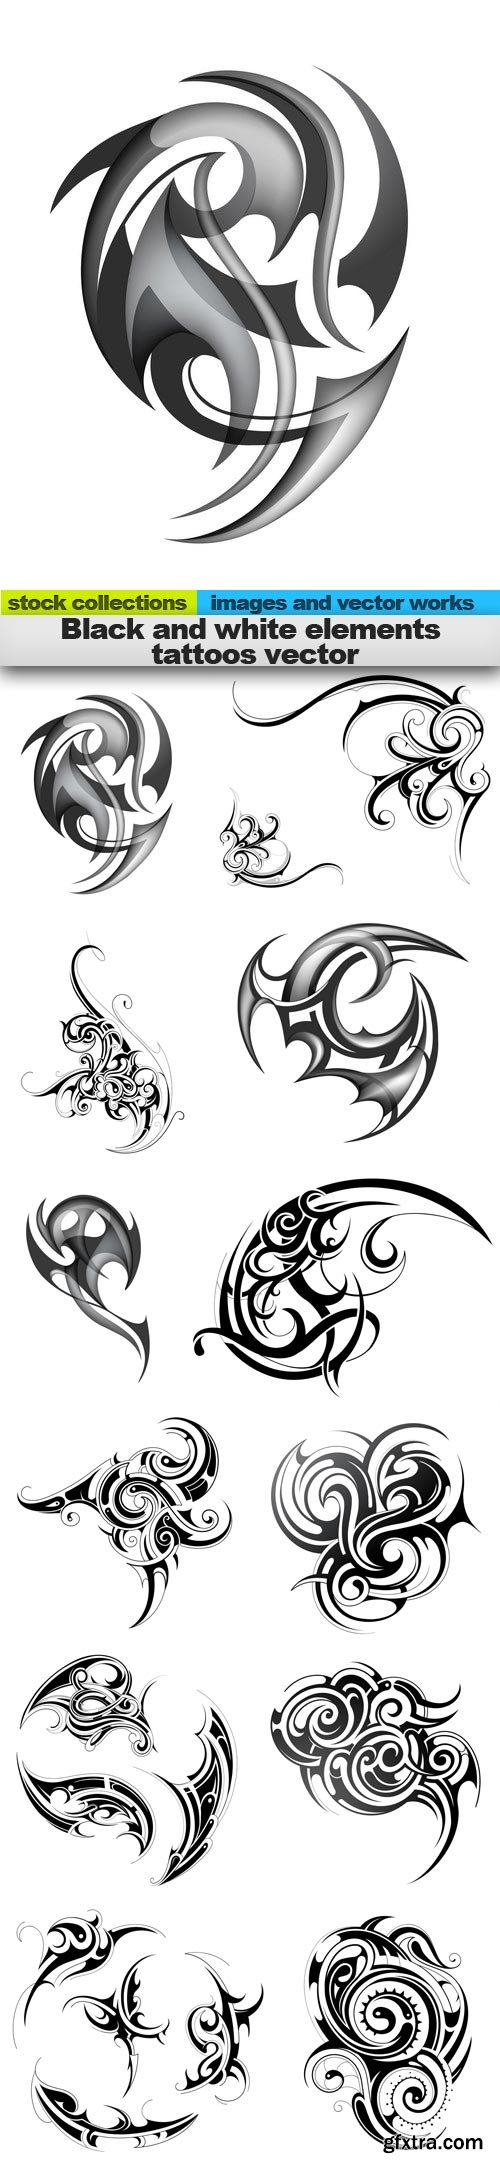 Black and white elements tattoos vector, 15 x EPS